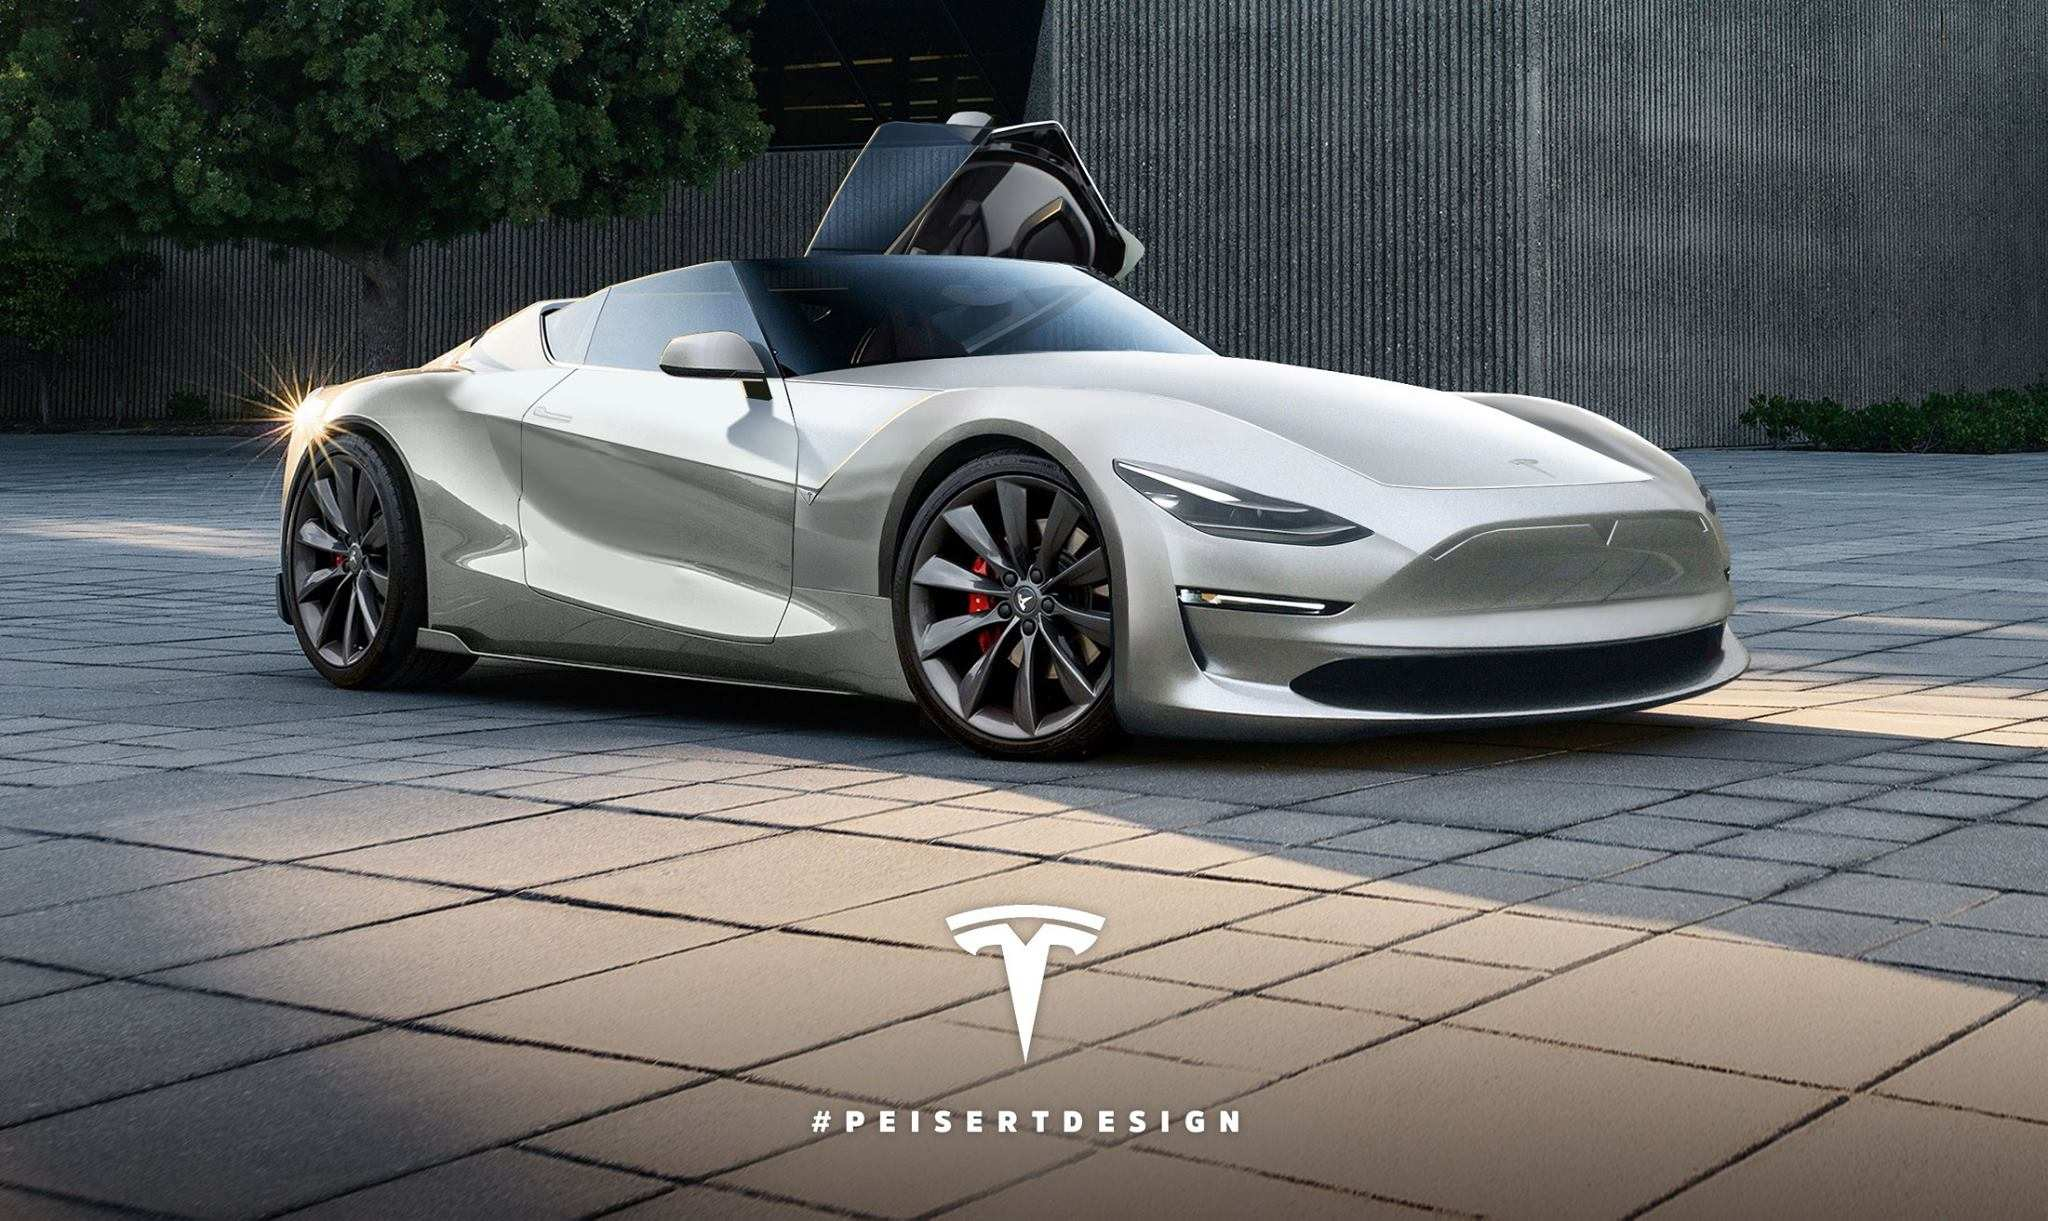 88 Gallery of Tesla 2020 Sales Pictures with Tesla 2020 Sales